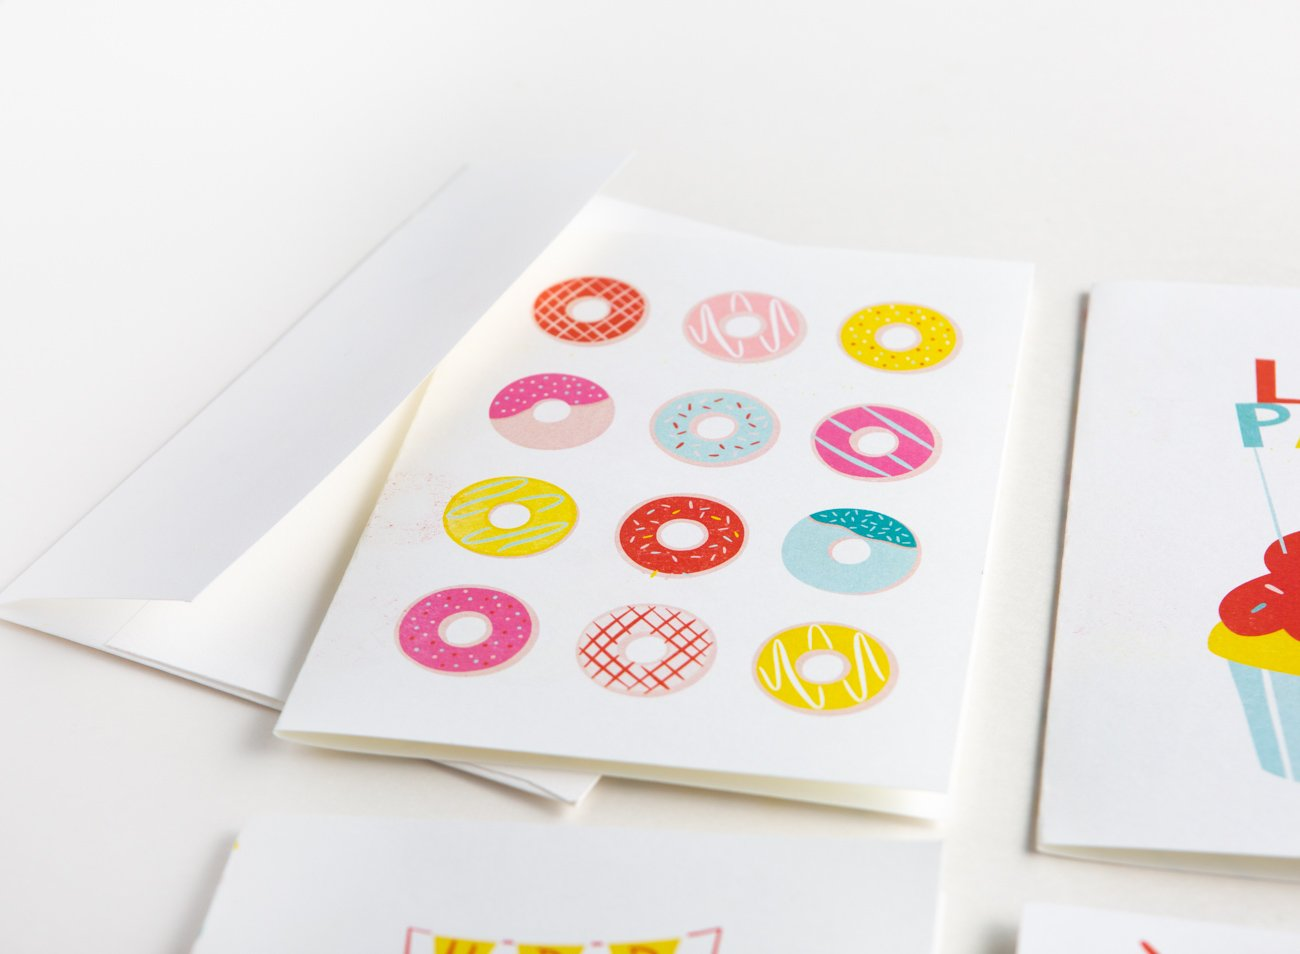 Free donut printable birthday card with rainbow donuts and sprinkles